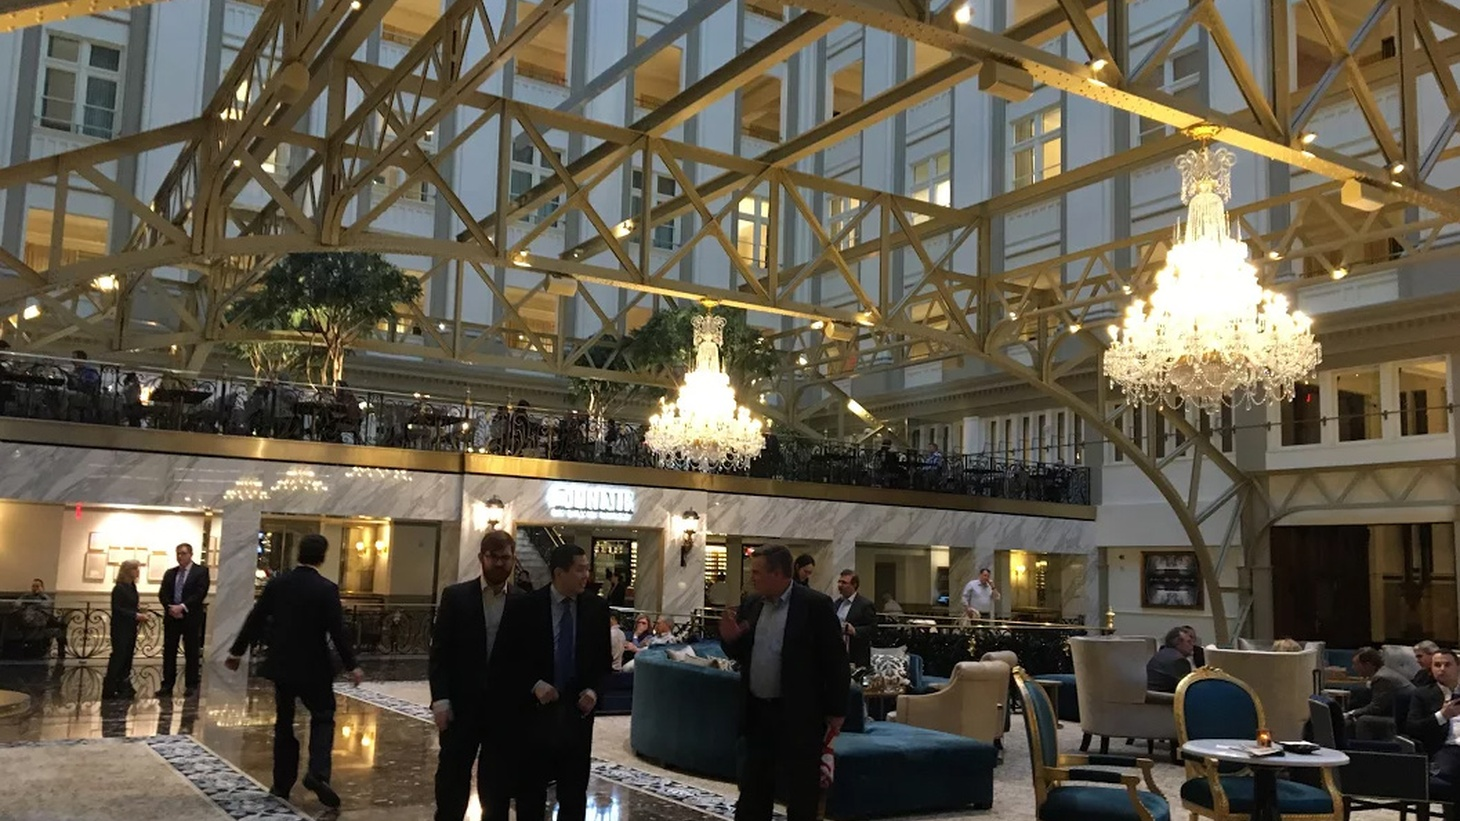 In Washington, DC, the historic Old Post Office Pavilion has earned a second life as Trump International Hotel. The luxury hotel with a restaurant and bar has become a favorite hangout for the DC elite. It's also earned criticism -- including a lawsuit by owners of a nearby wine bar -- because President Trump, his family and White House staffers continually promote the hotel.